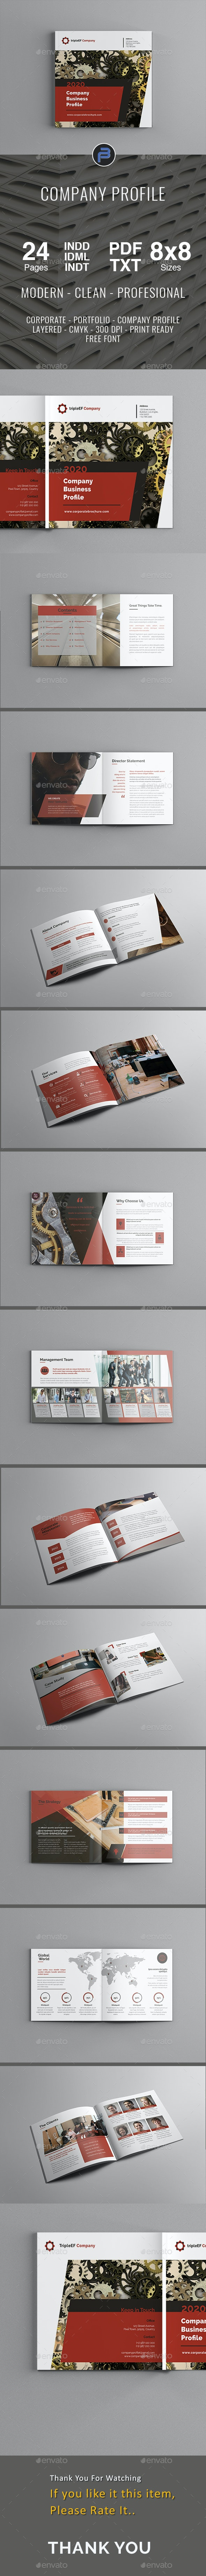 Red Company Profile by tripleEF | GraphicRiver